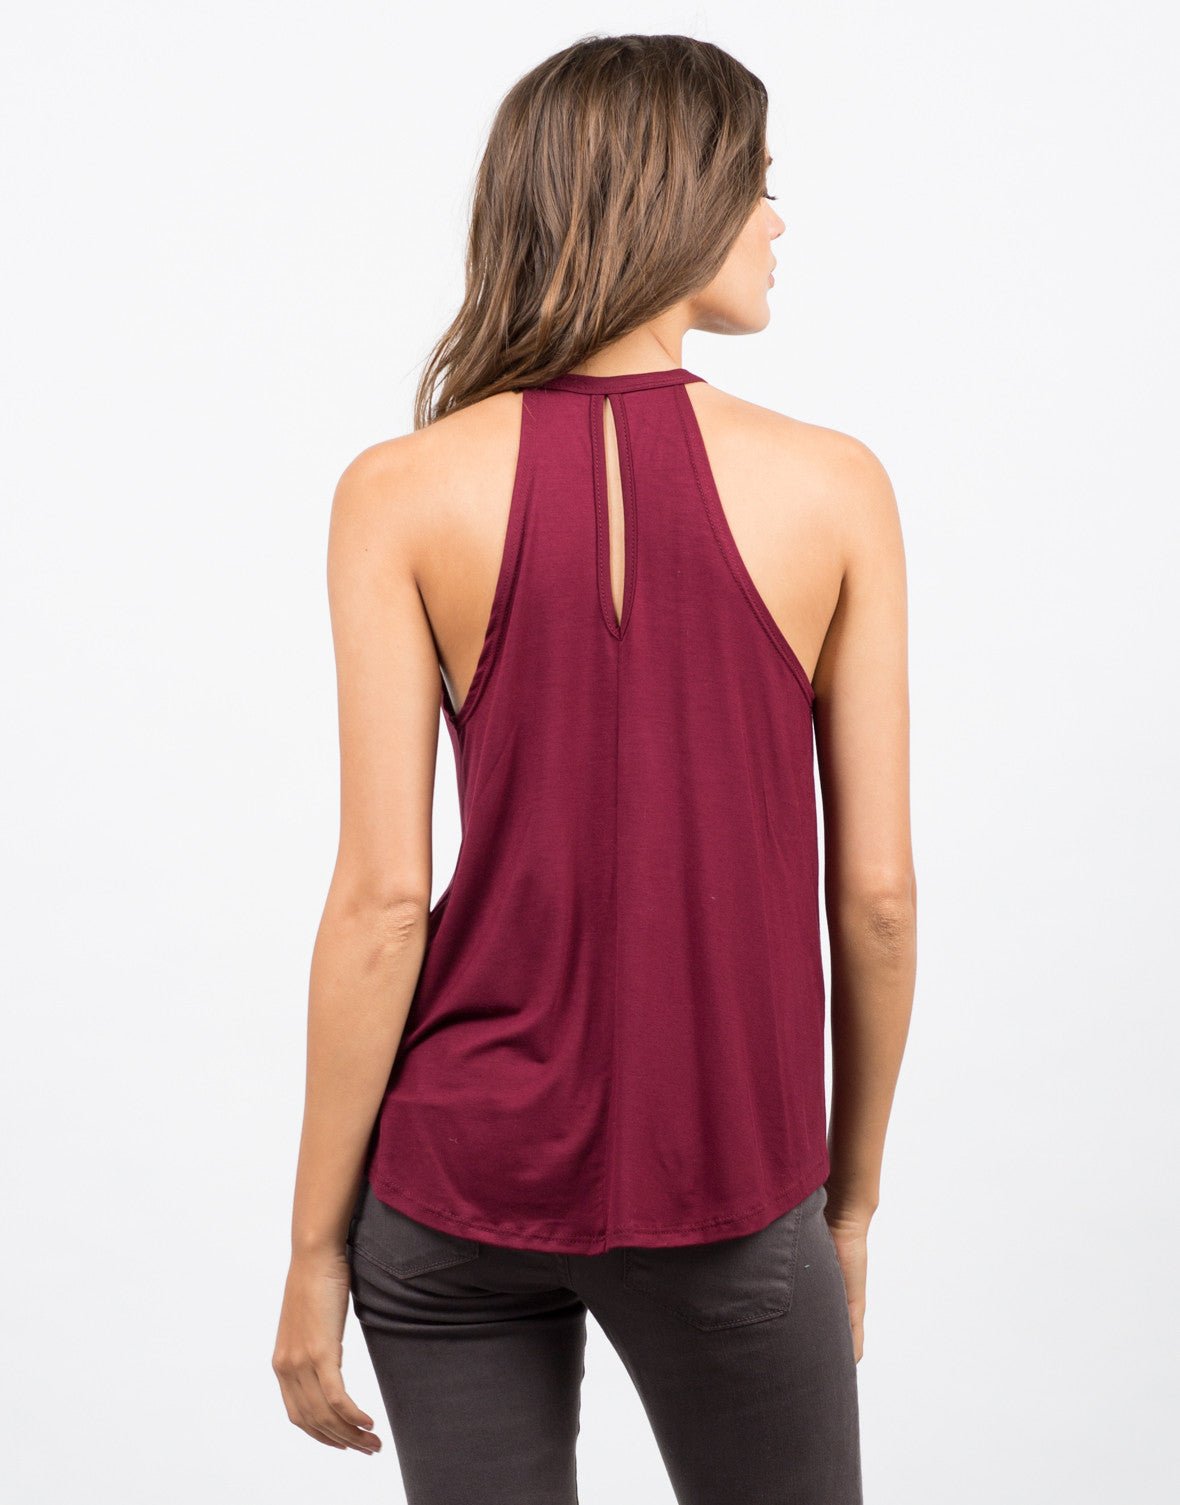 Back View of Flowy Halter Top